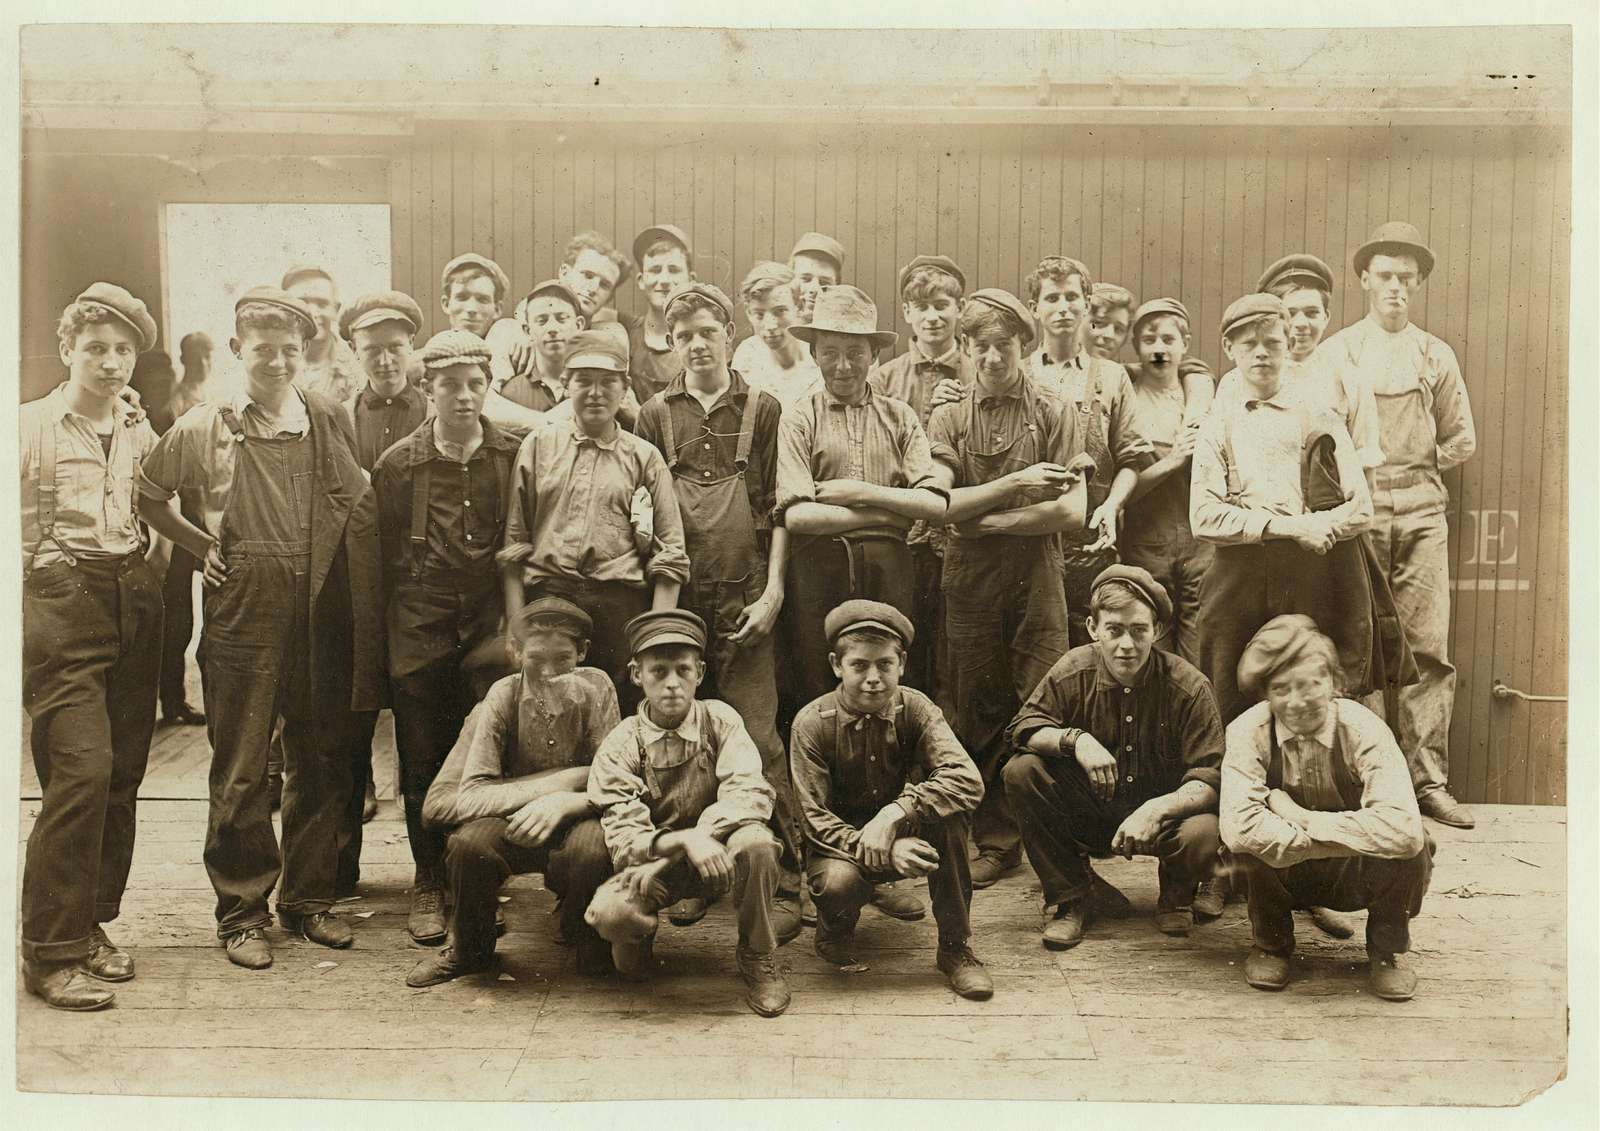 Noon Hour in an Indianapolis Cannery. Aug. 1908. Location: Indianapolis, Indiana